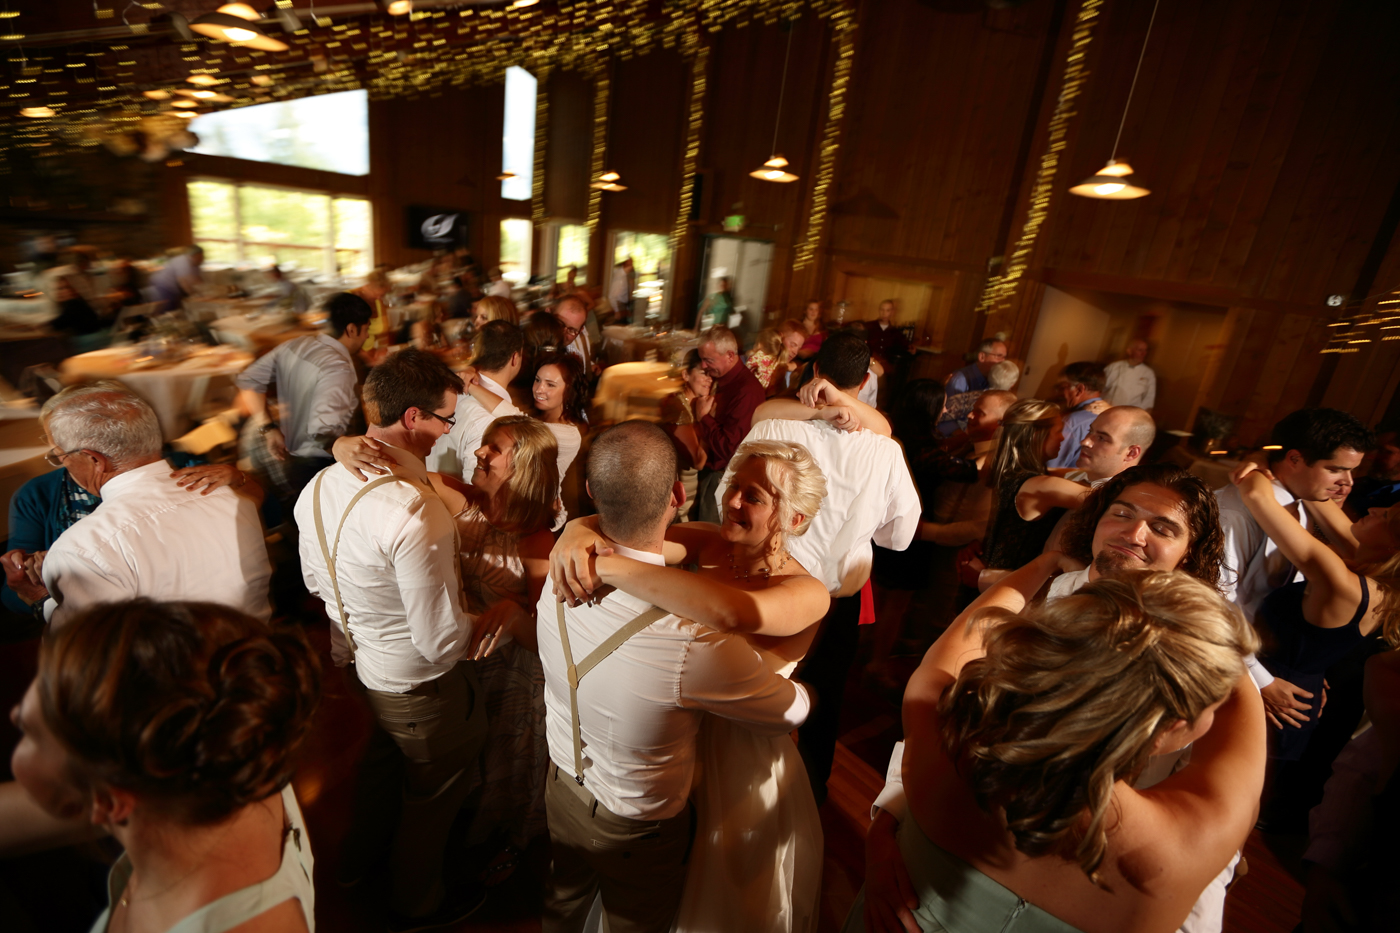 Wedding Slow Dance at Bayshore Clubhouse - Photo credit Chugach Peaks Photography